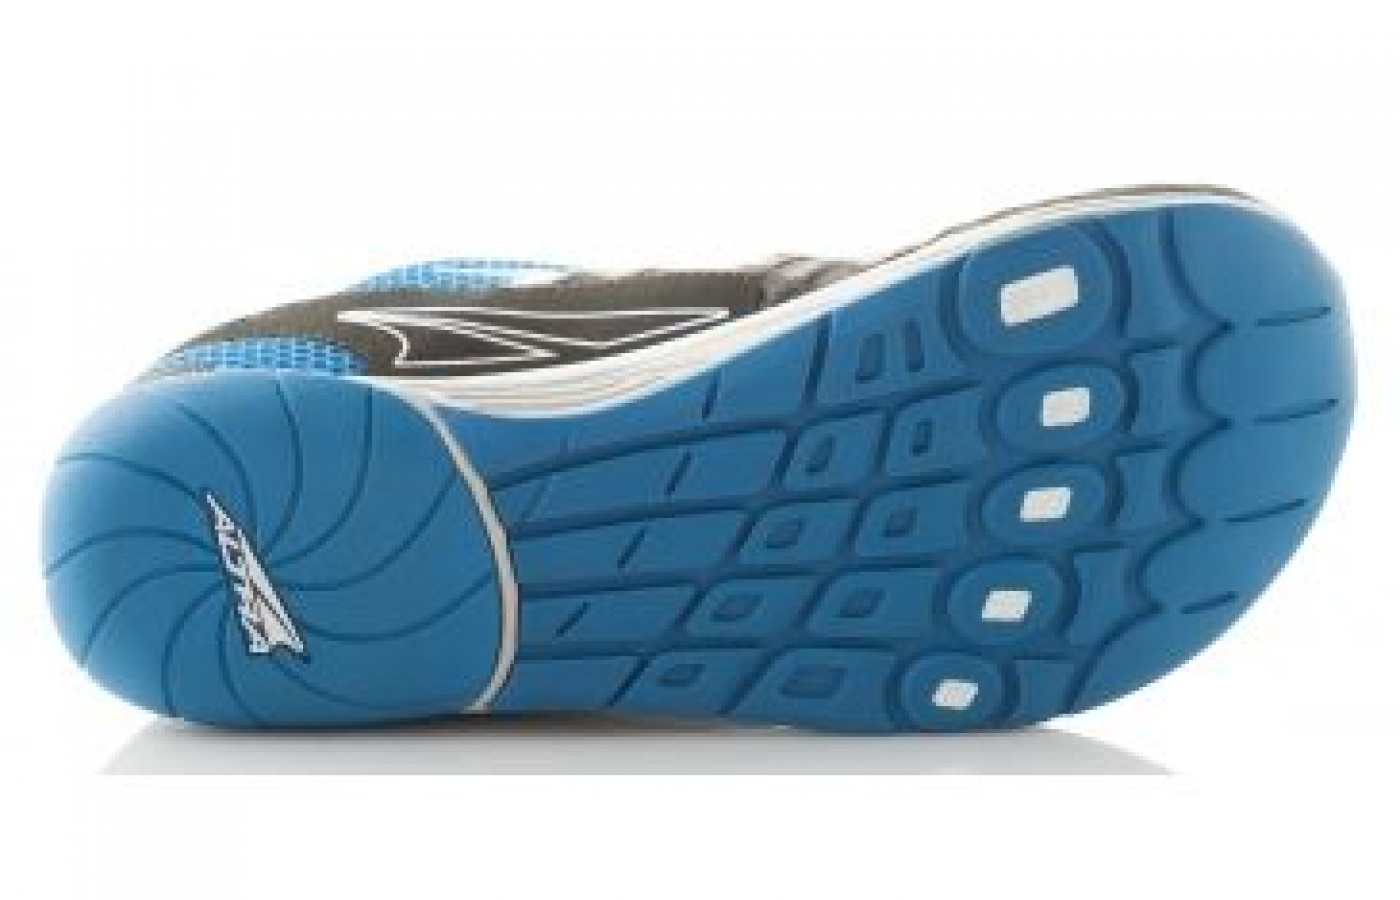 The Altra Instinct 1.5 has an outsole made of rubber